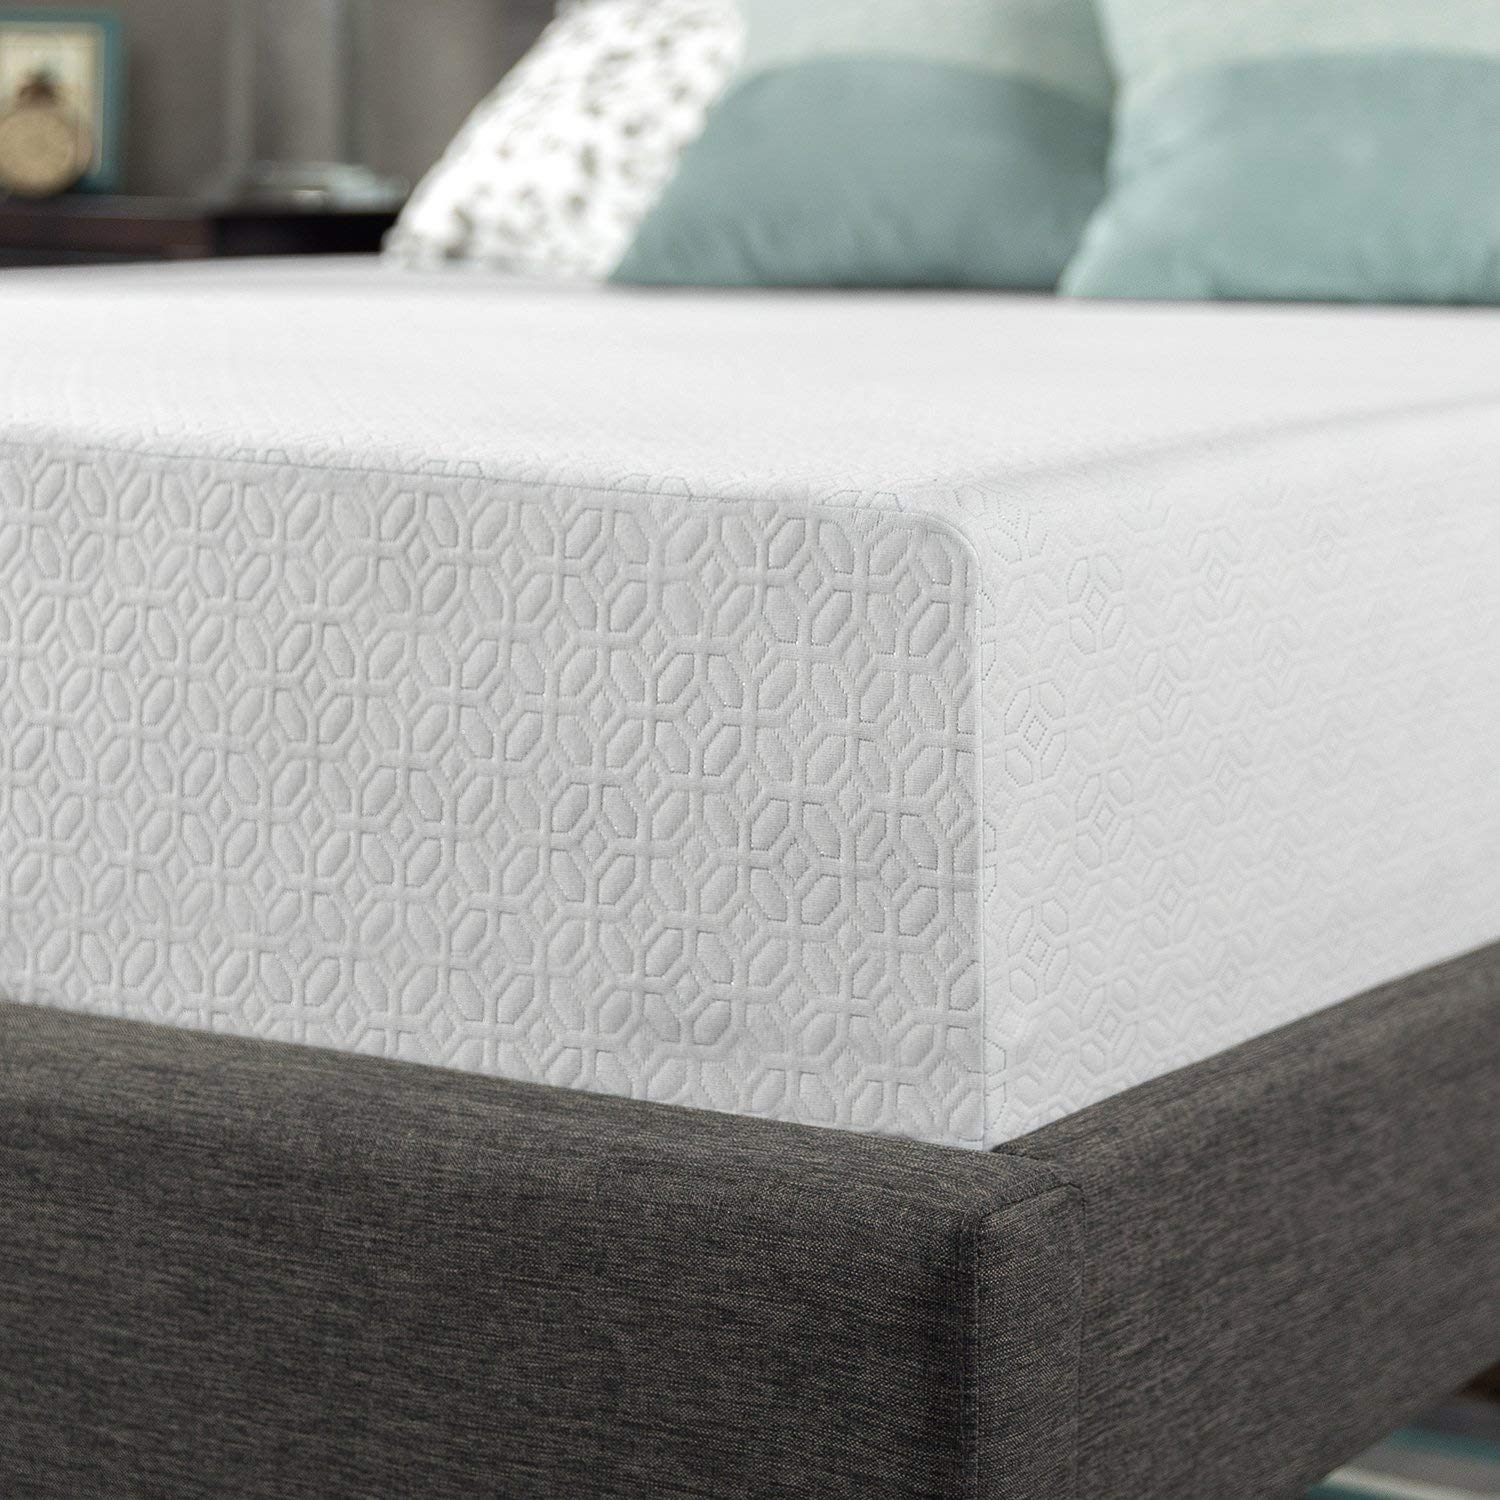 Zinus Gel-Infused Green Tea Memory Foam Mattress features